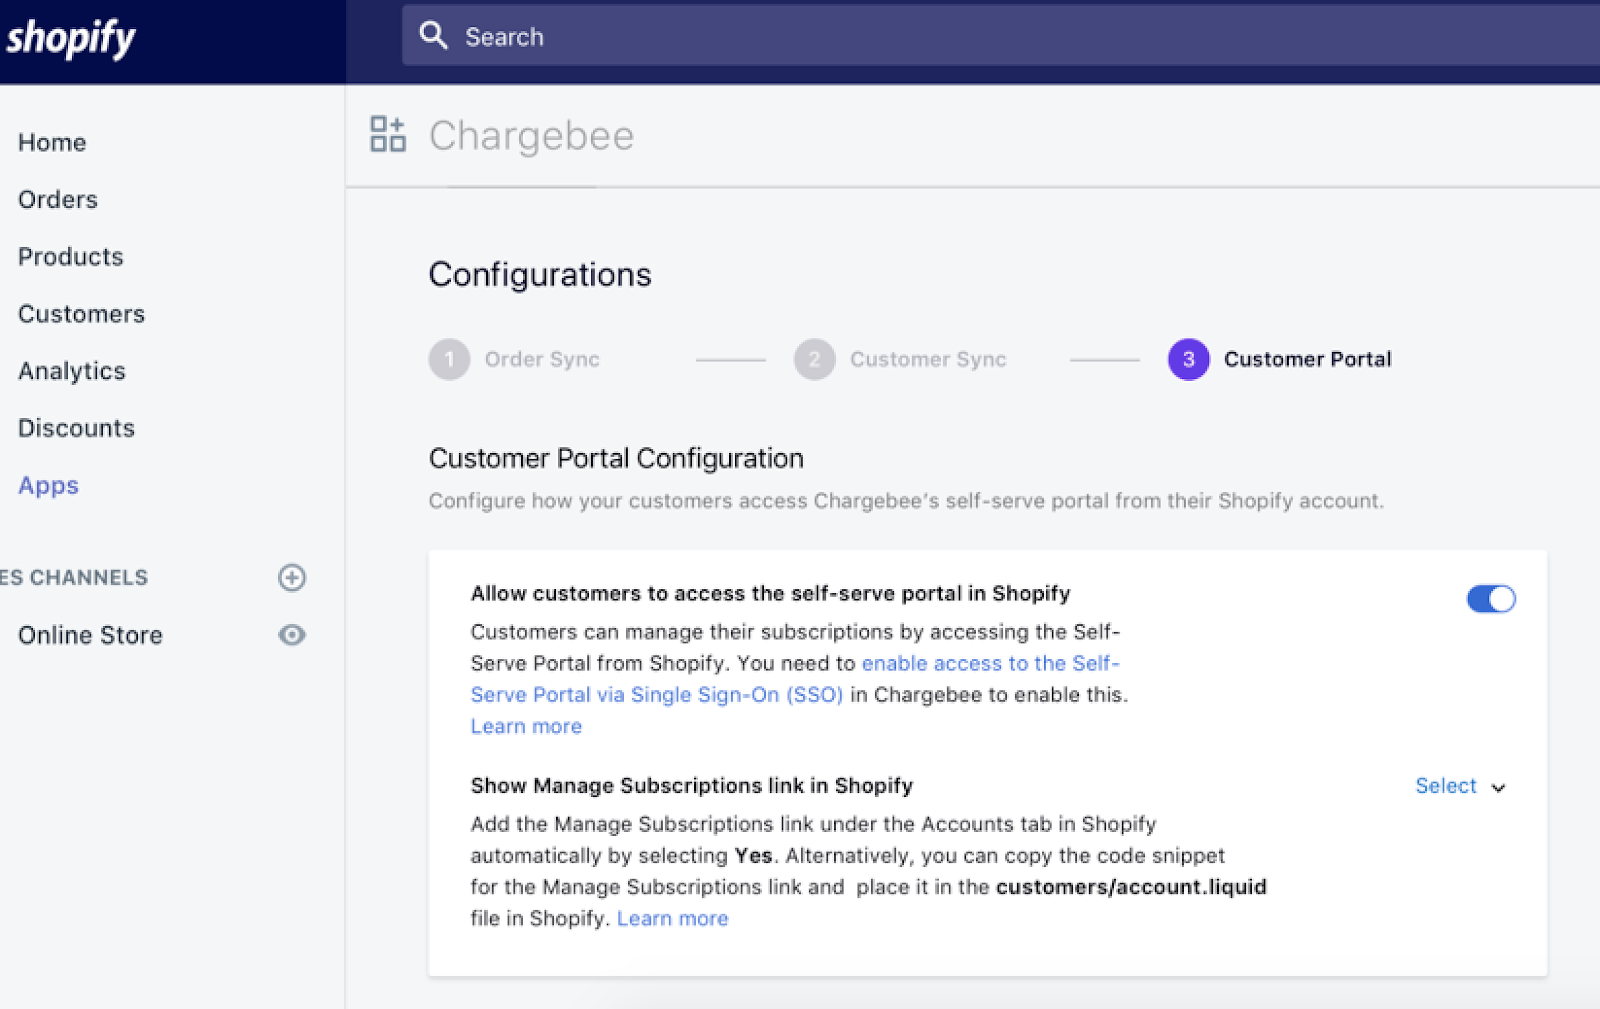 Shopify - Chargebee Integration